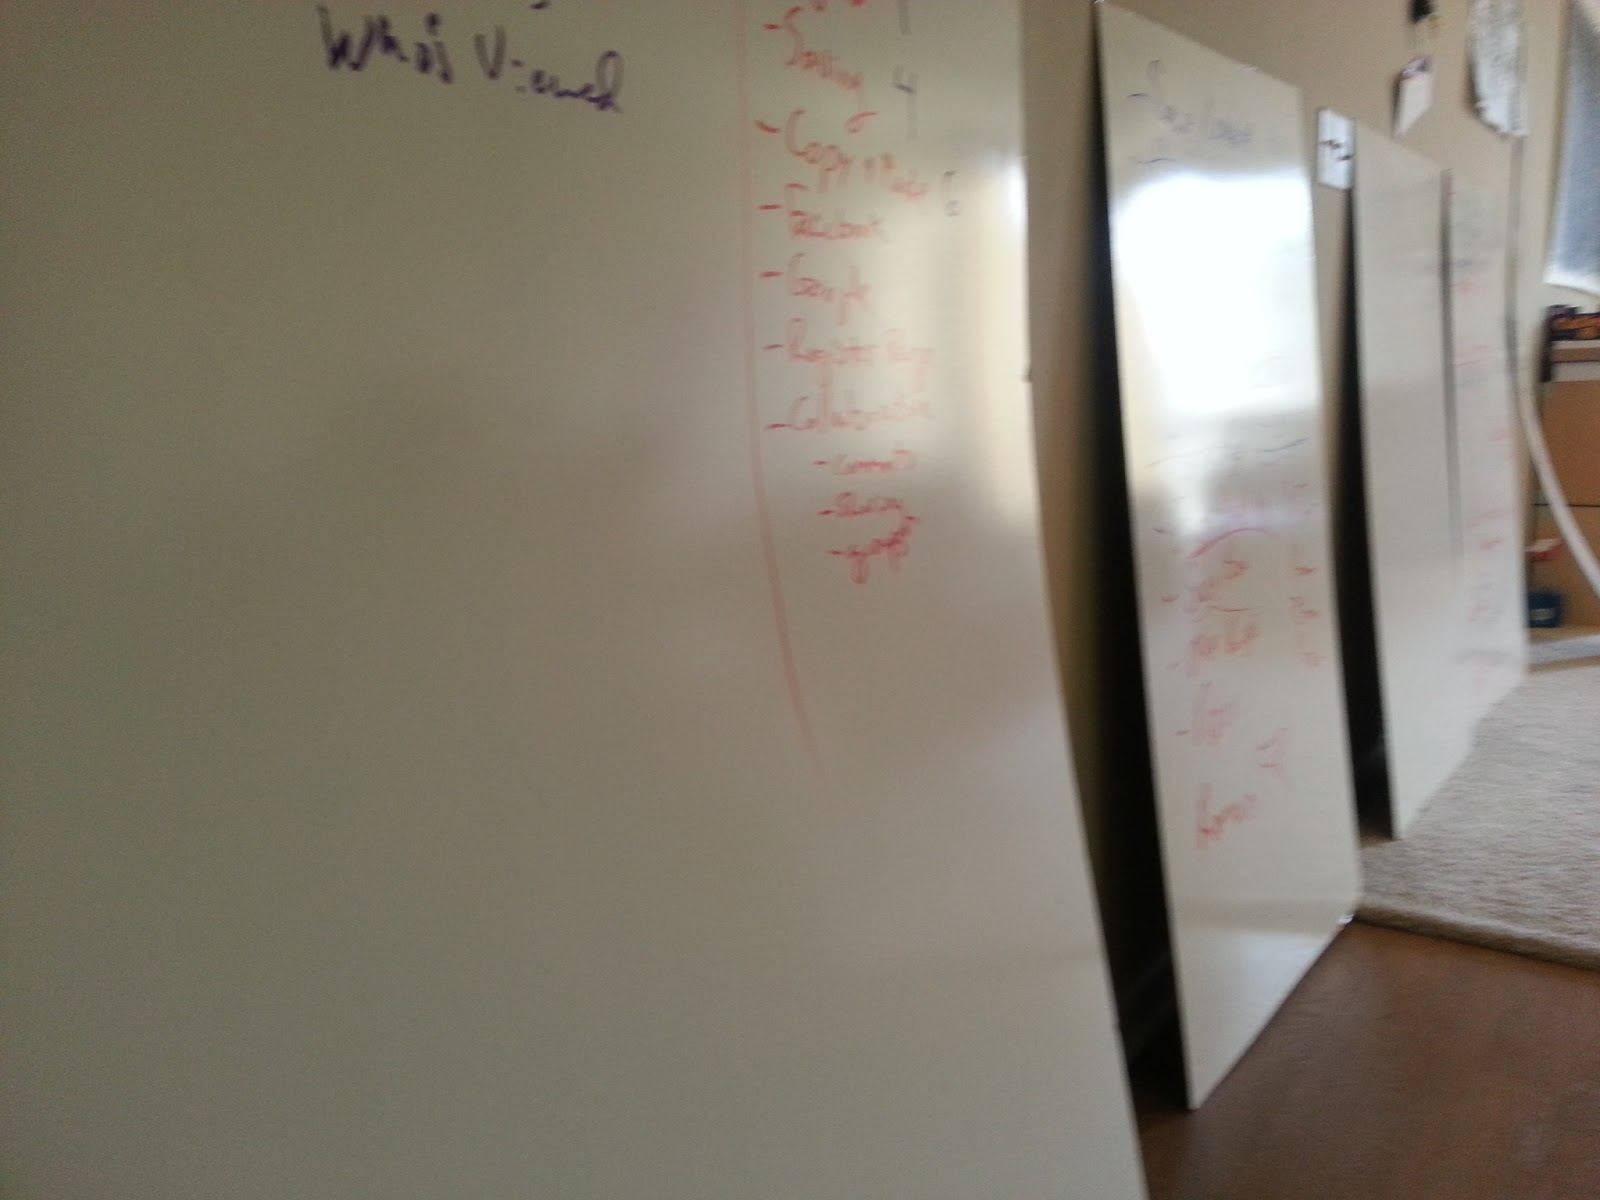 whiteboard lining the walls